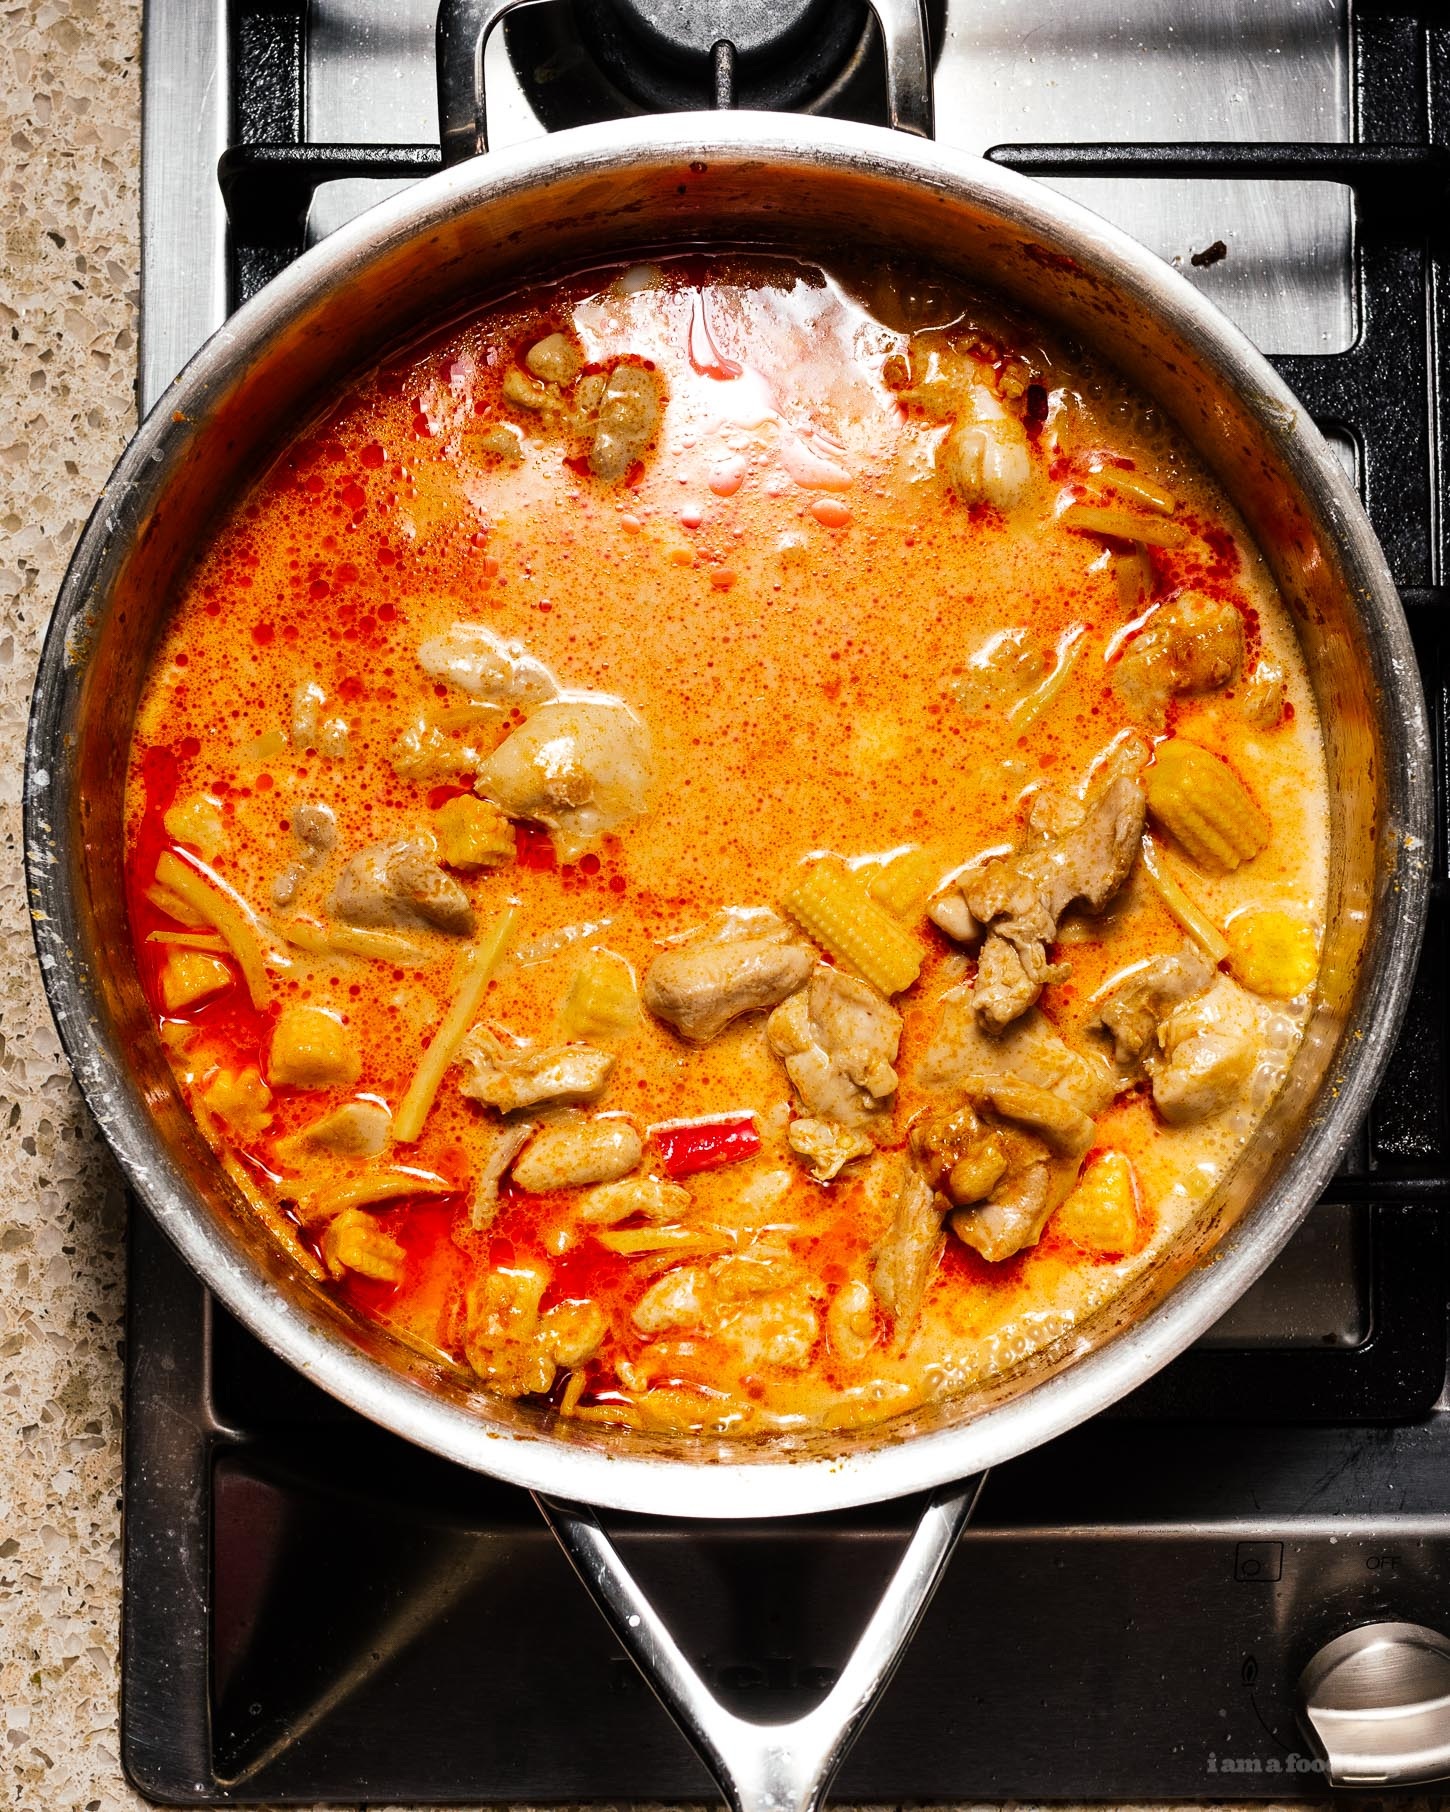 Thai Red Curry Chicken With Bamboo Shoots Recipe 183 I Am A Food Blog I Am A Food Blog